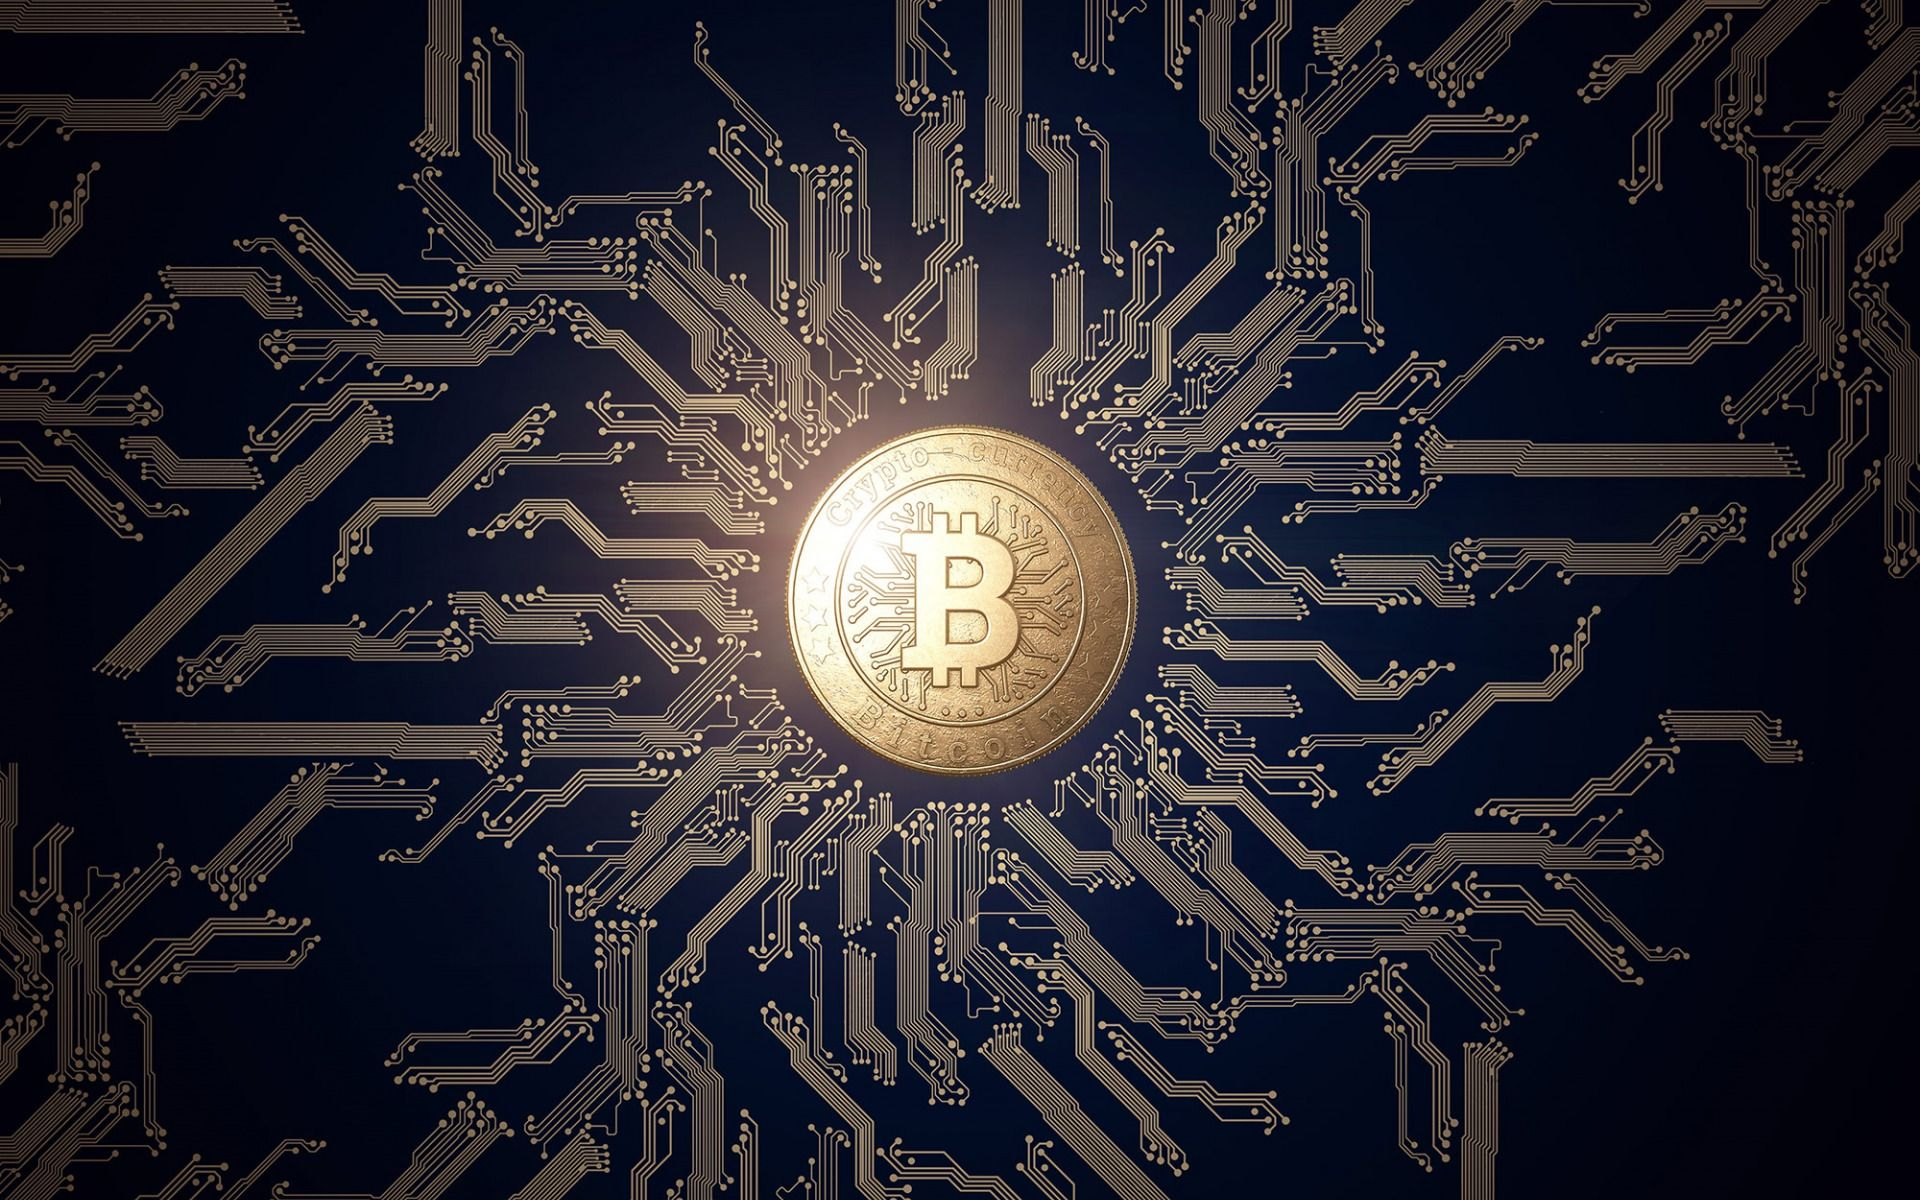 1920x1200 Download wallpapers bitcoin, crypto currency sign, blue ...